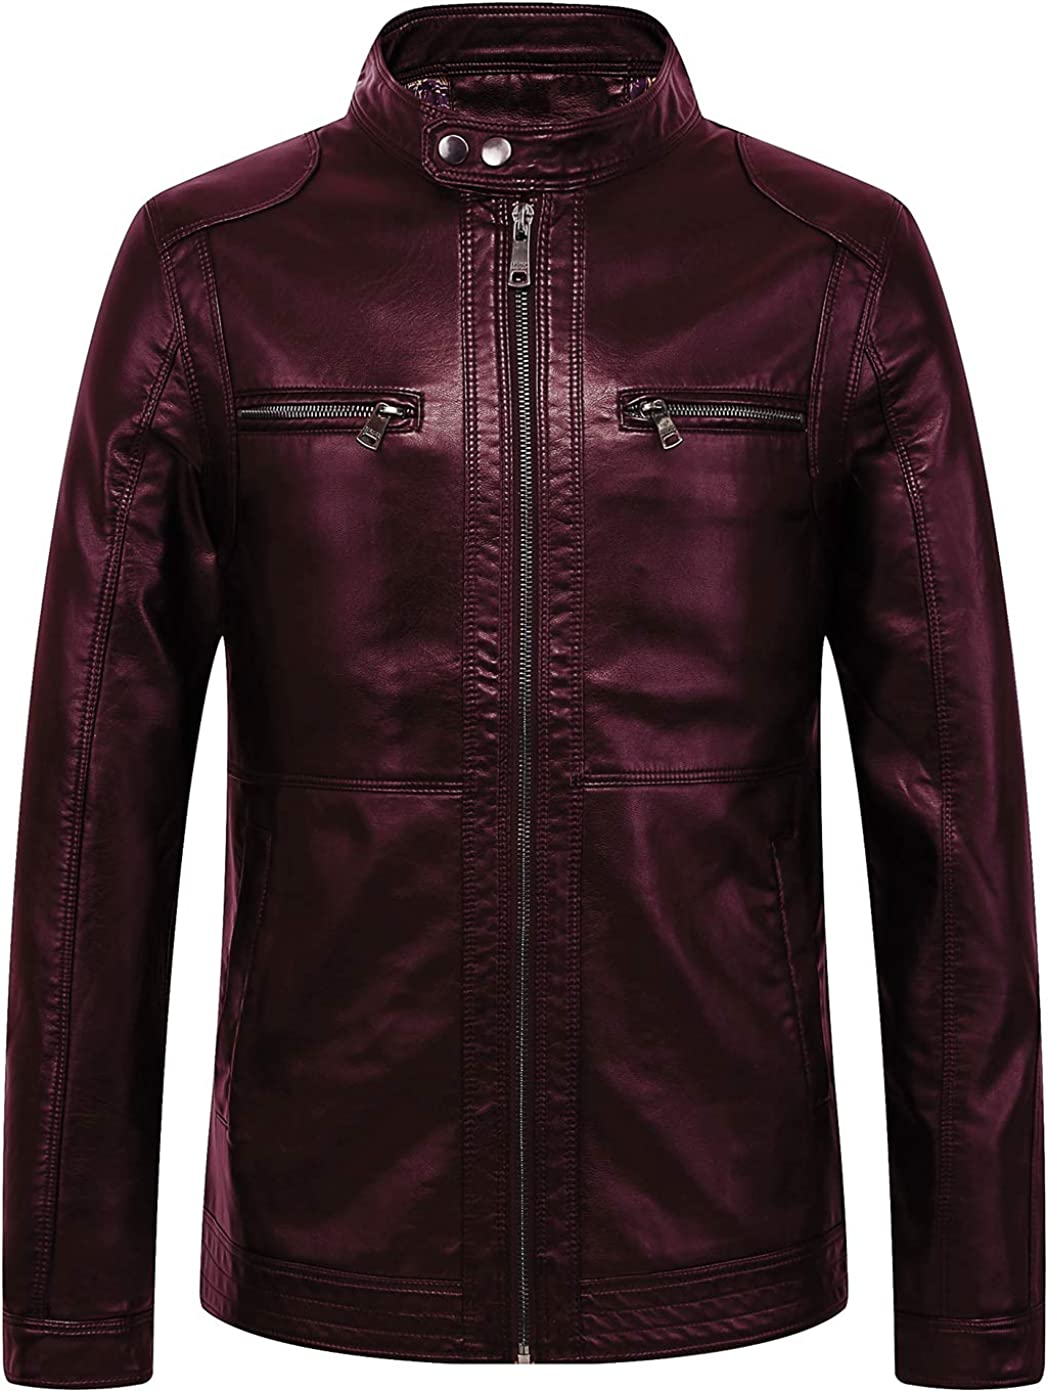 chouyatou Men's Vintage Rugged Motorcycle Leather Spring Sales of SALE items from new works new work Faux Zip-Front